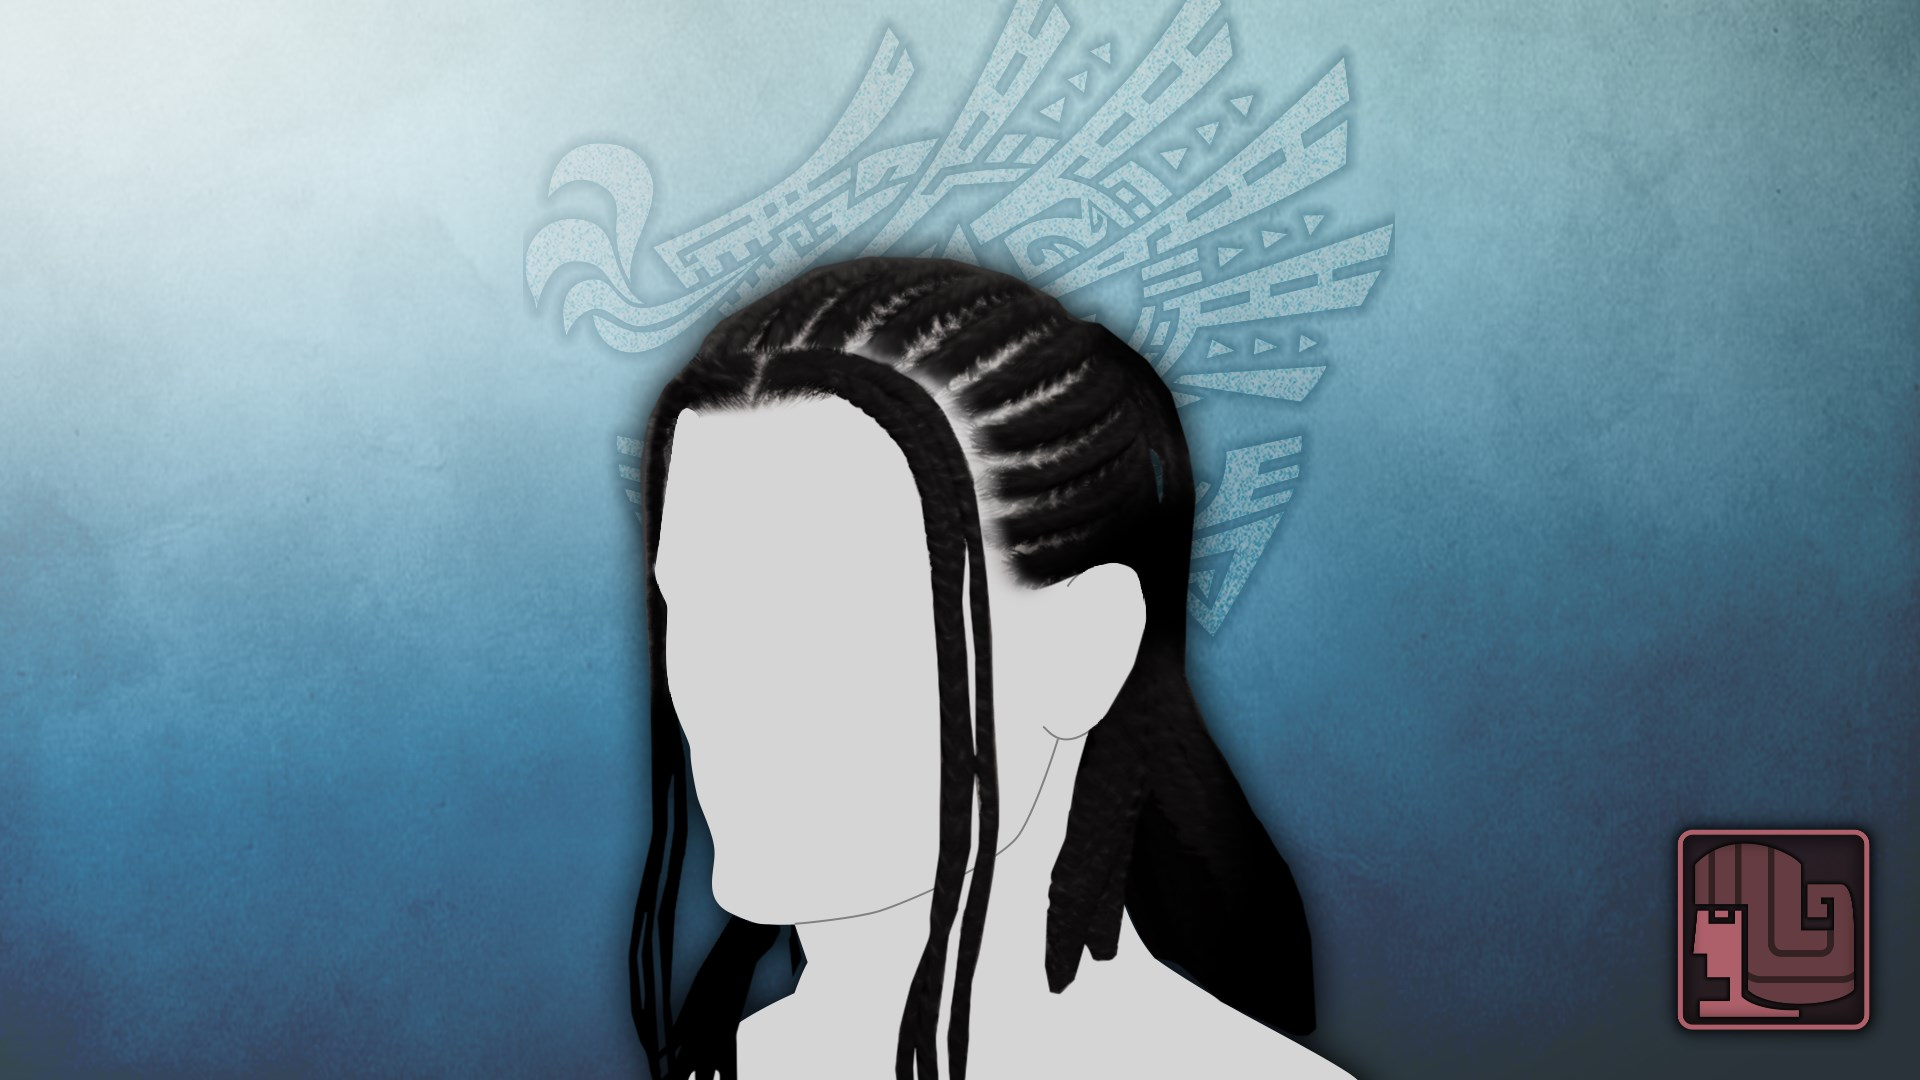 Hairstyle: The Seeker